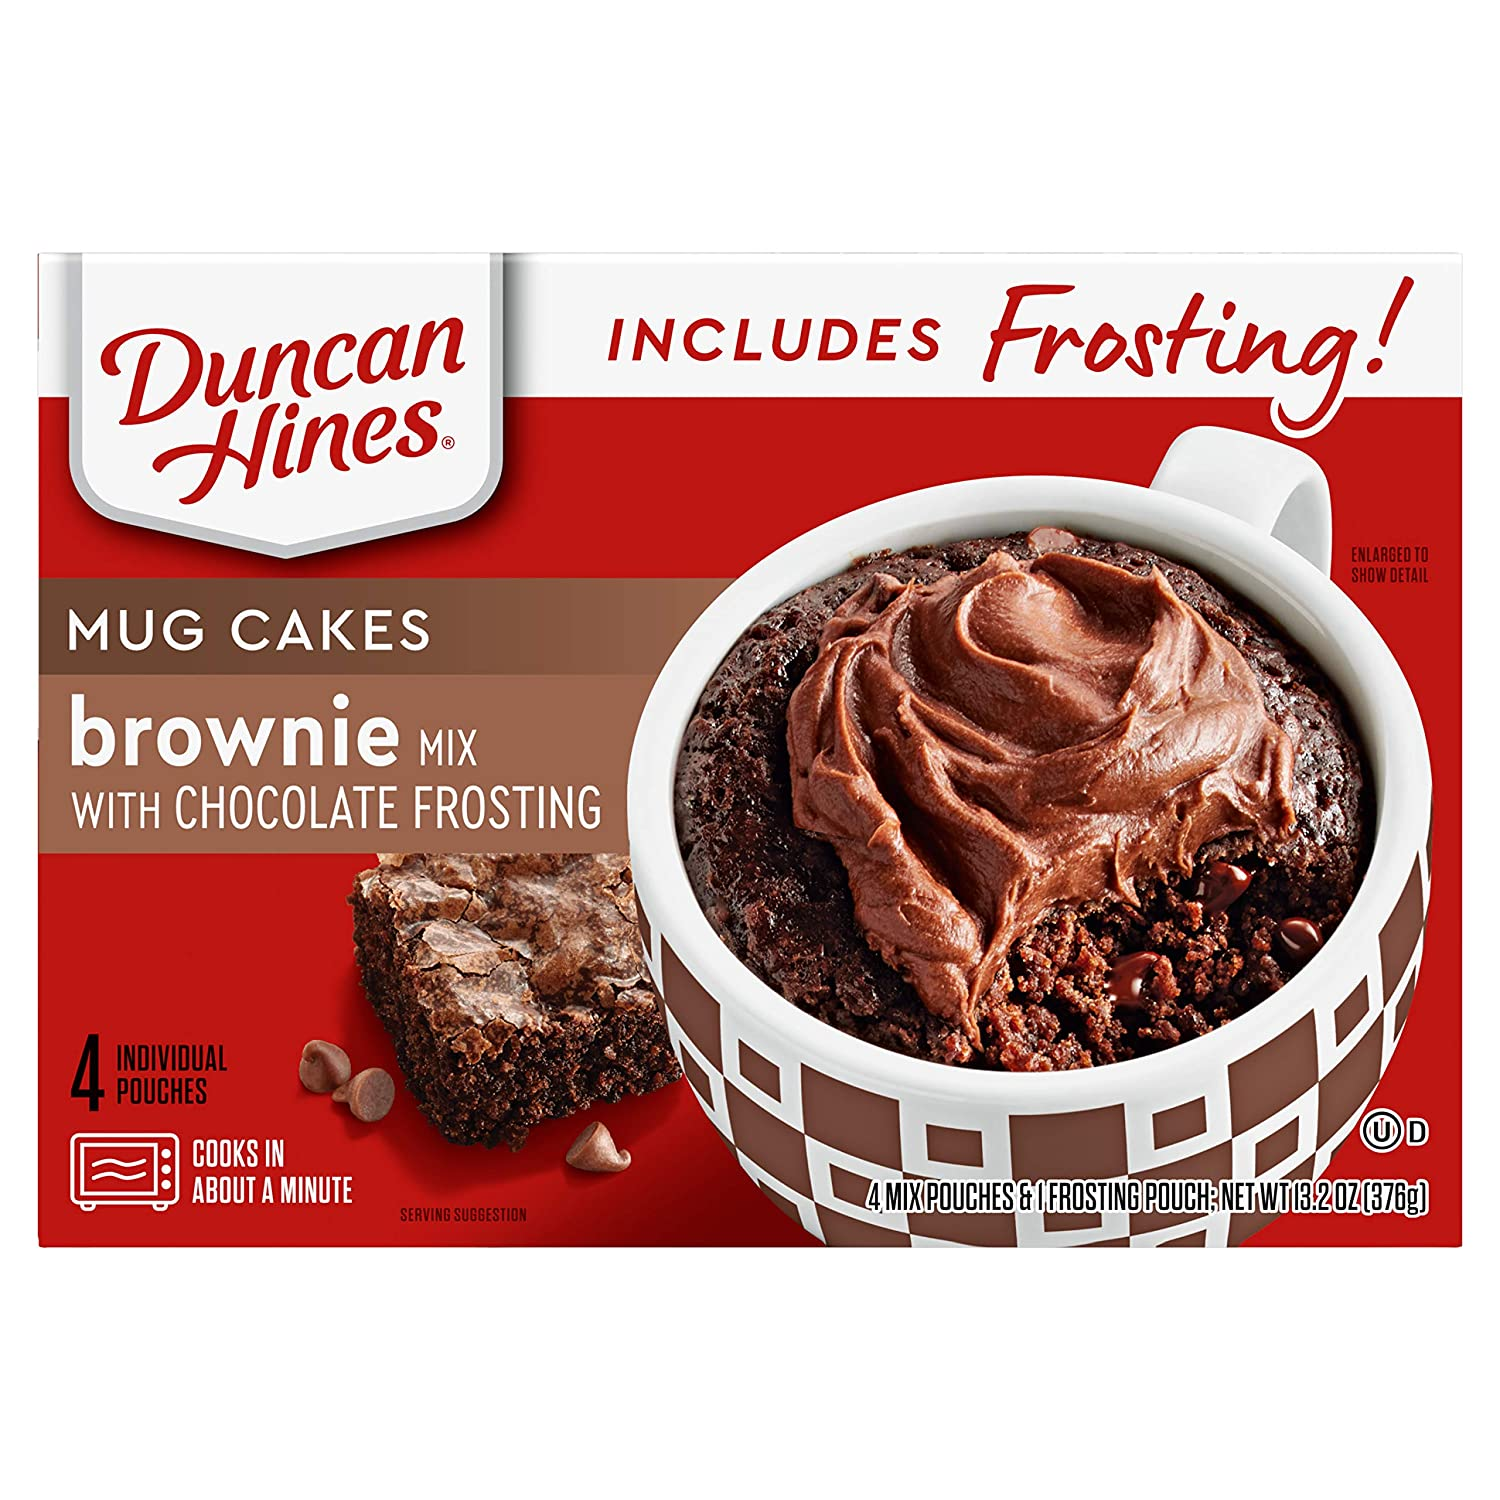 Duncan Hines Mug Cakes Brownie Mix with Chocolate Frosting, 13.2 oz Box